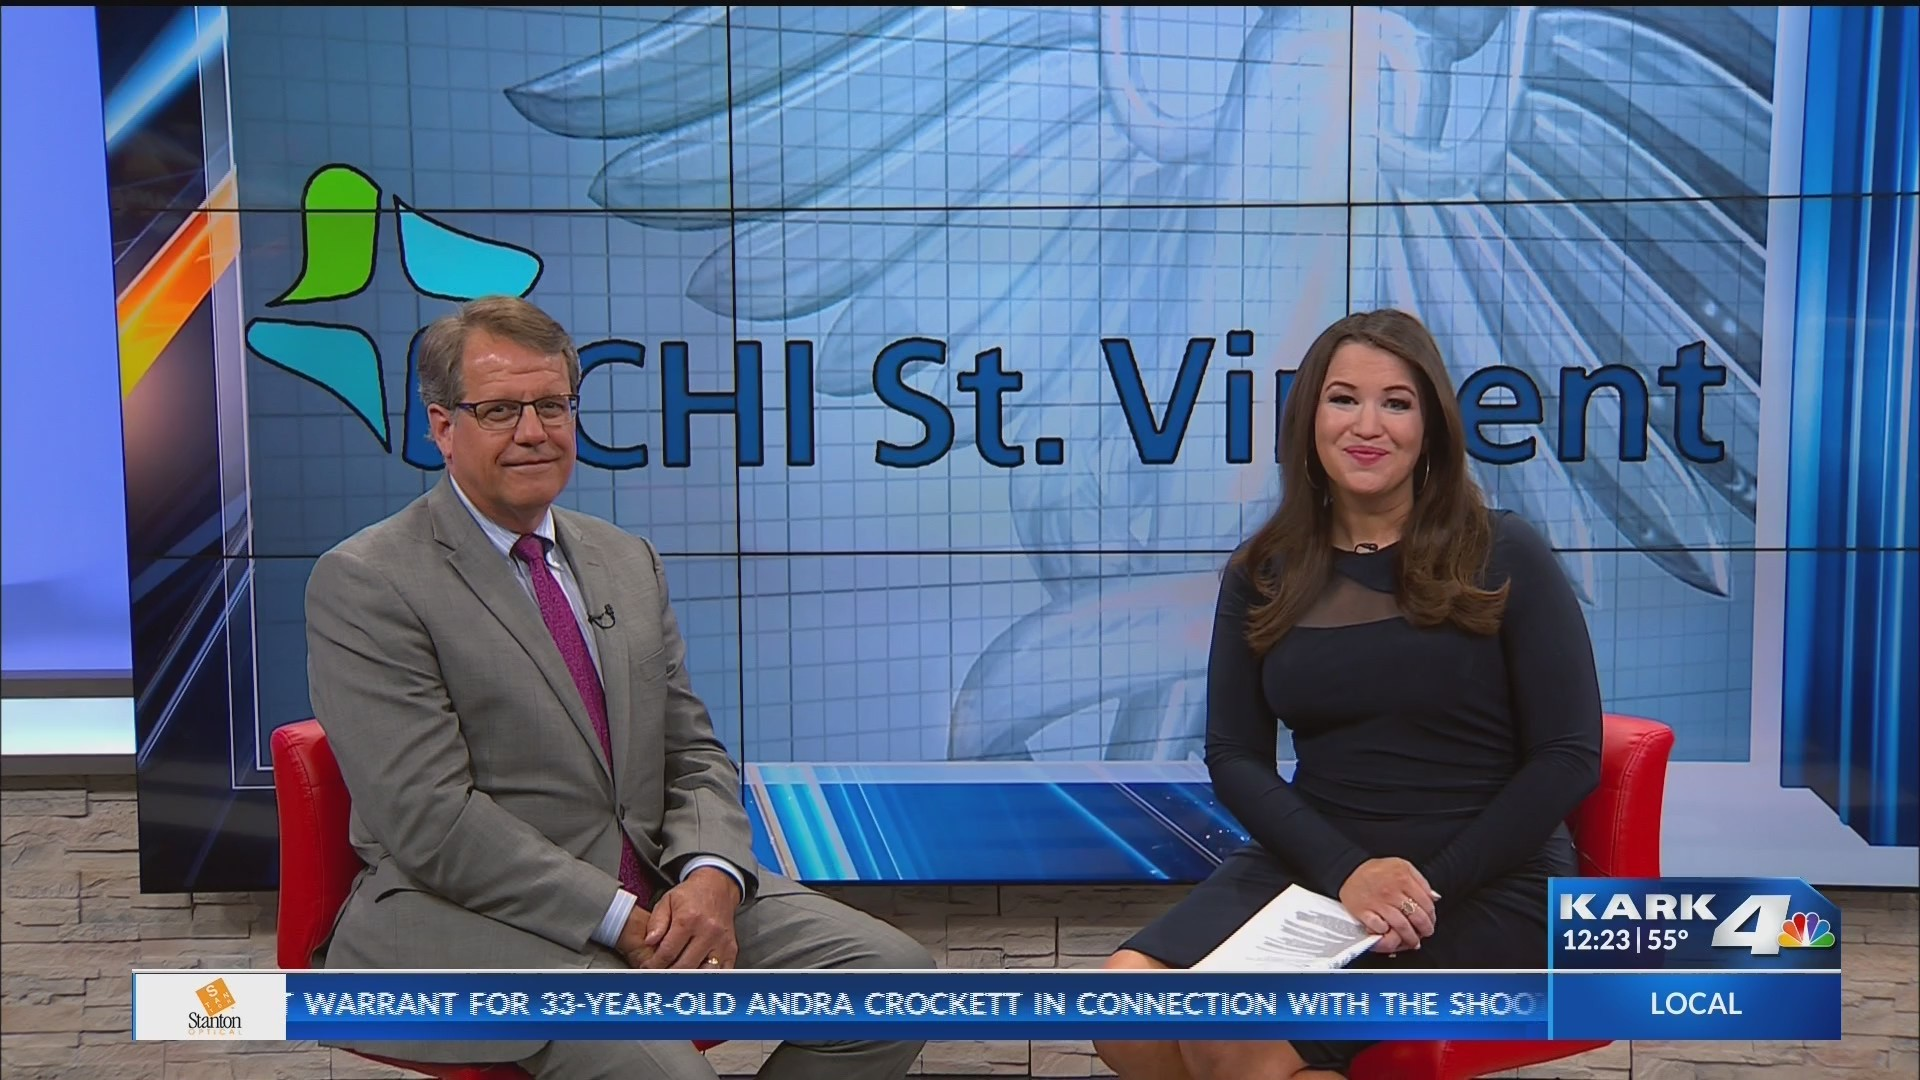 KARK 4 News - CHI St. Vincent 3/8